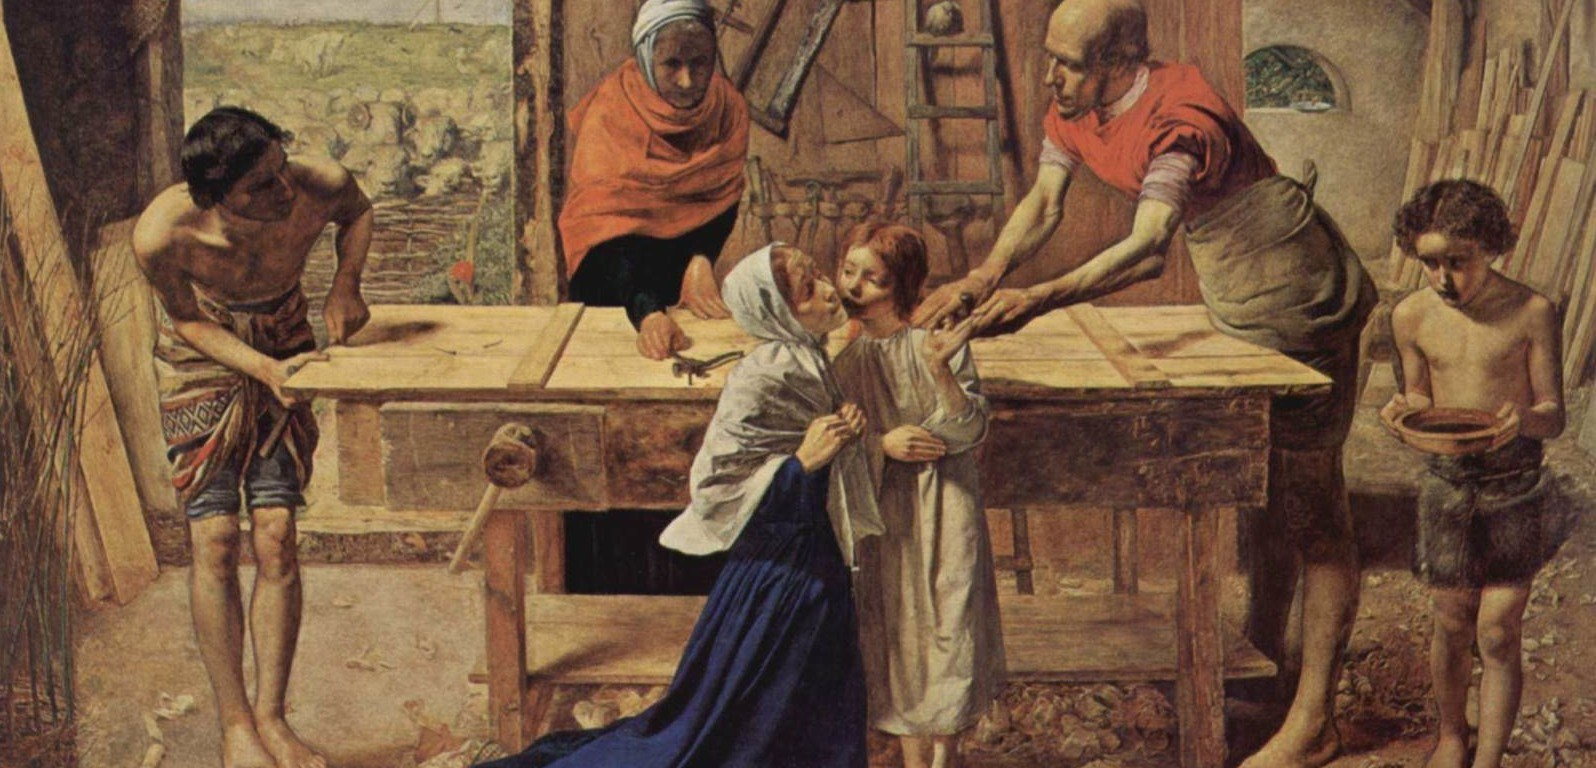 Jesus+at+the+home+of+his+parents+(the+workshop+of+the+Carpenter)-1600x1200-16738